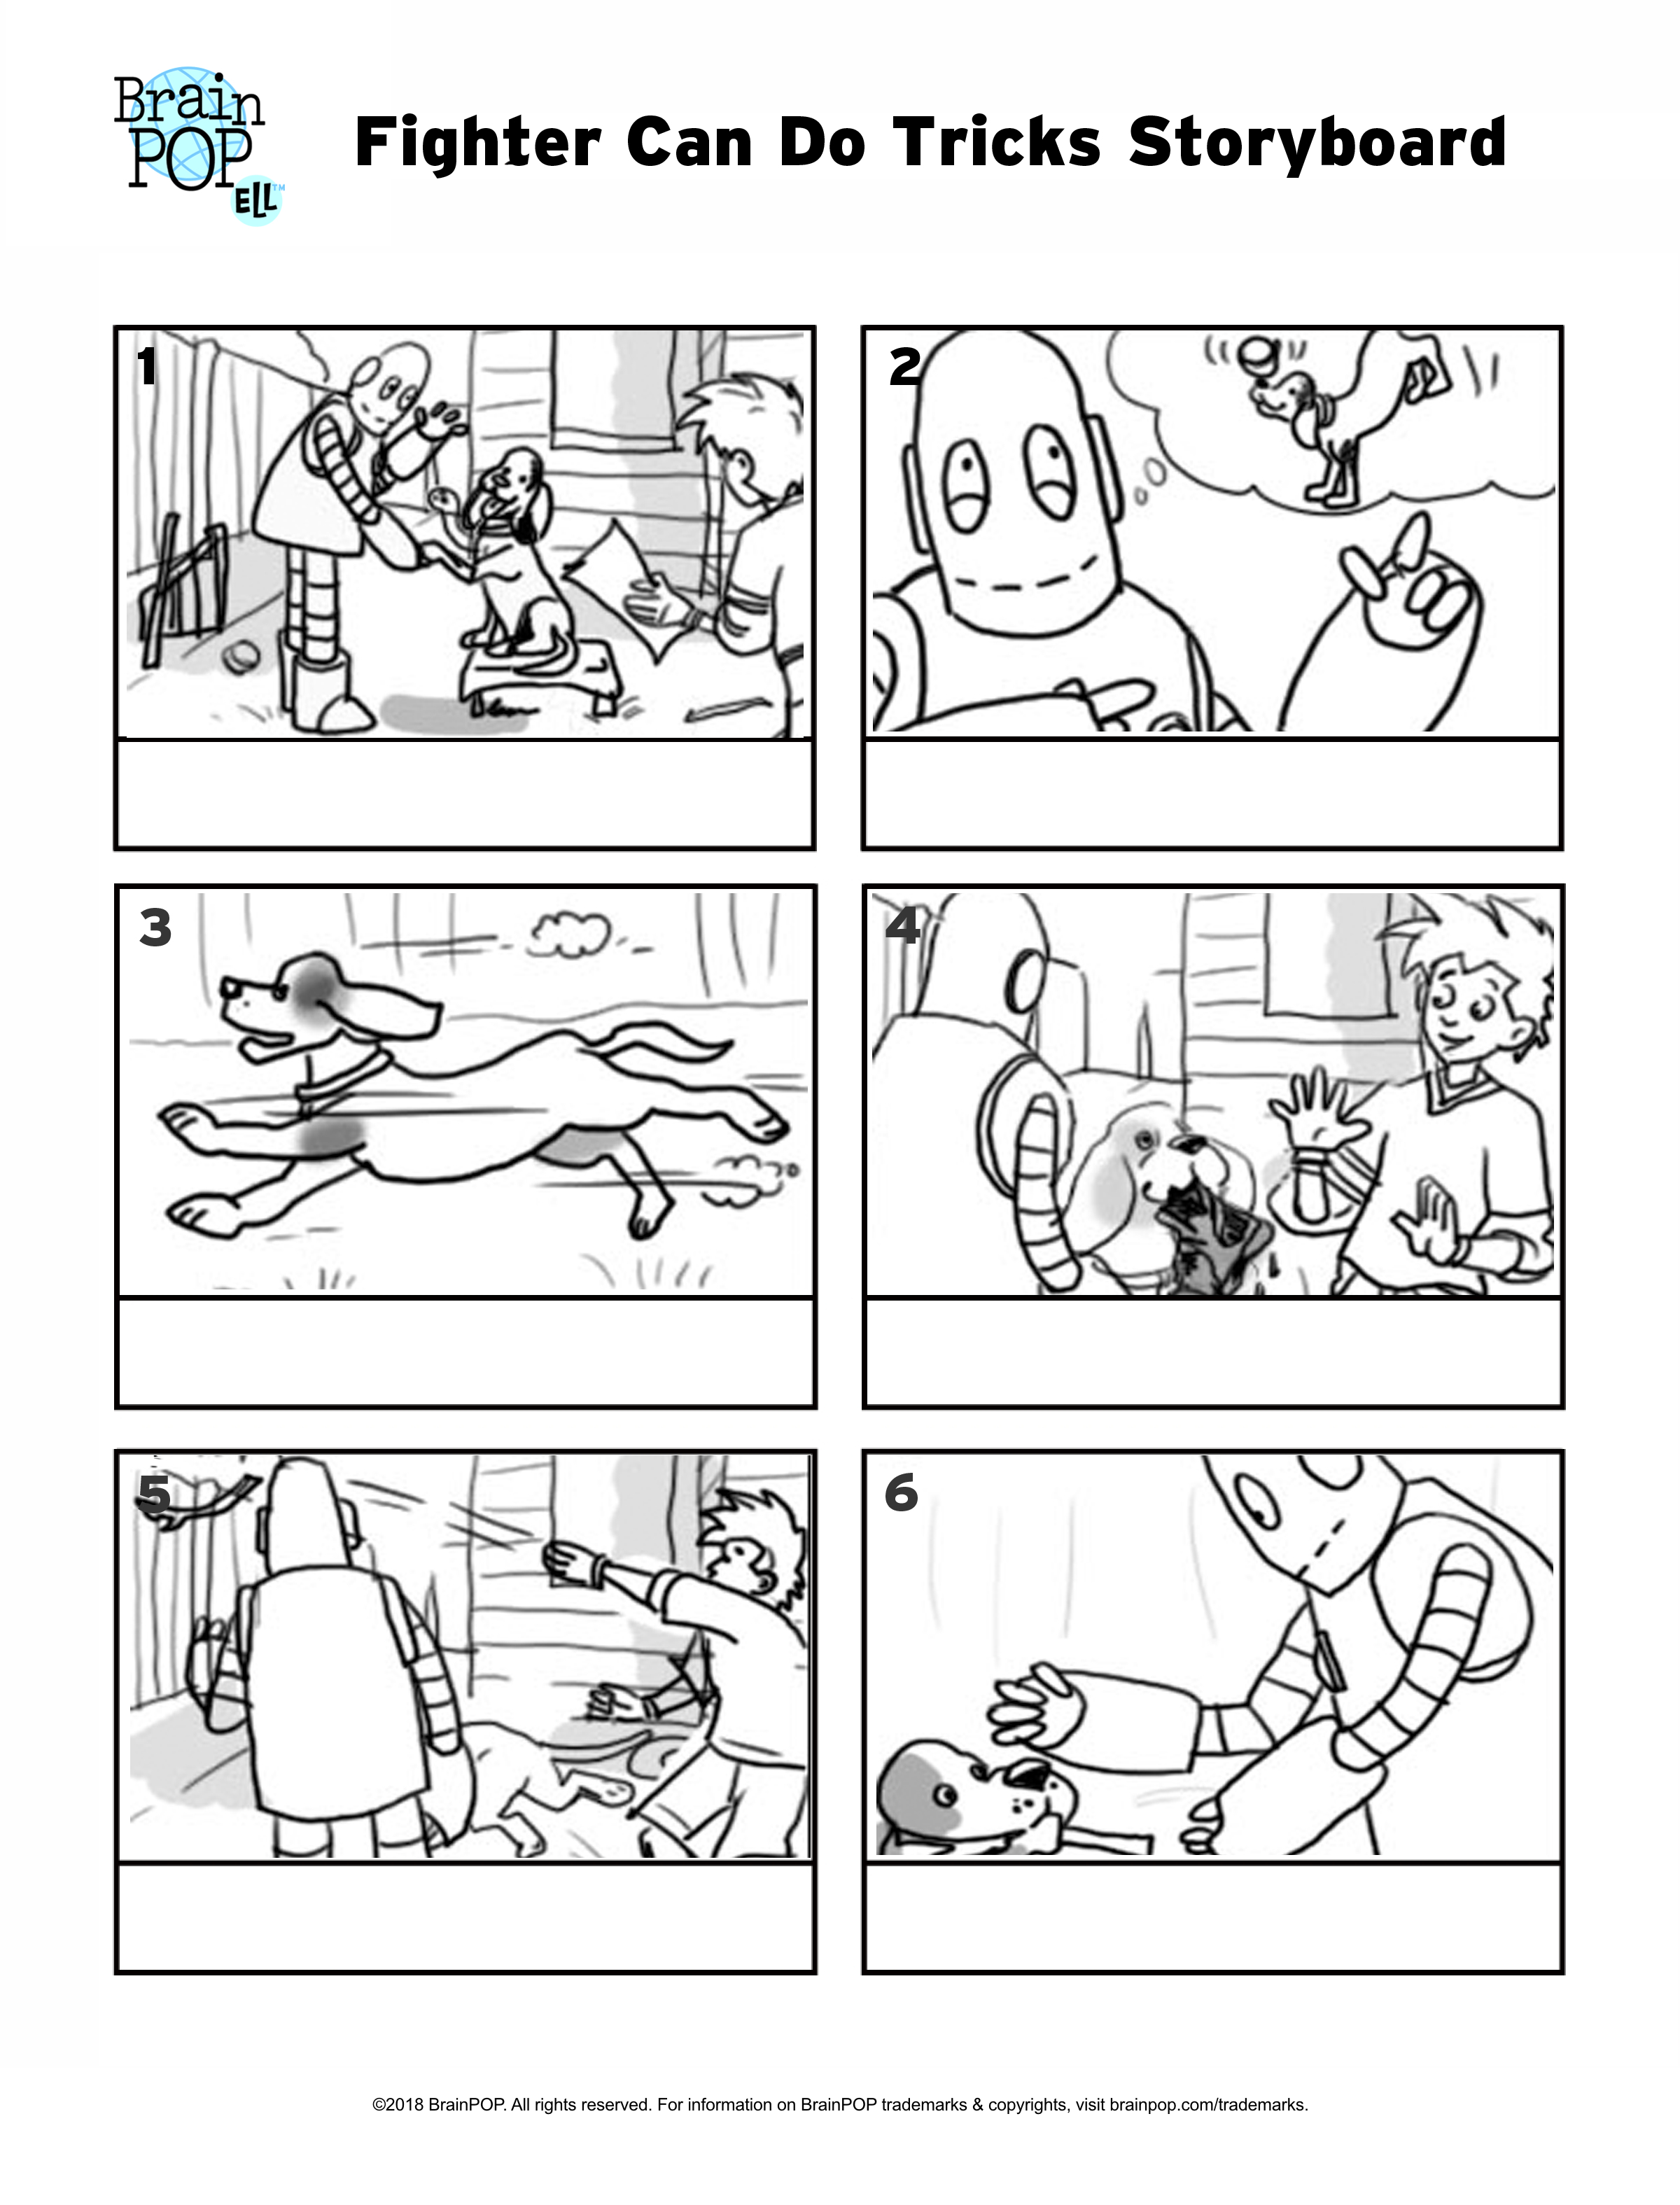 Fighter Can Do Tricks Storyboard